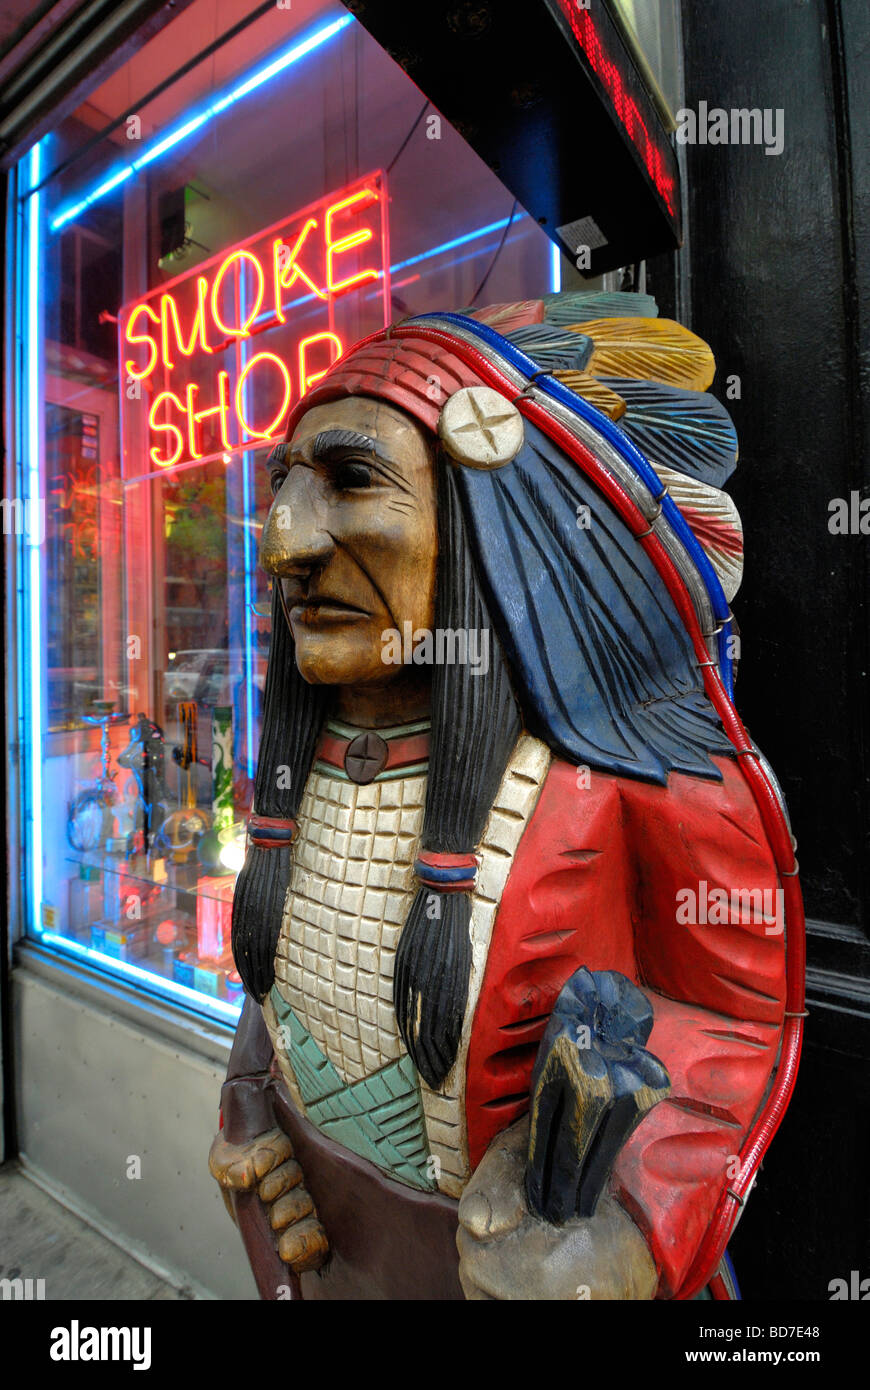 Indian Smoke Shop >> Smoke Shop Indian Indigenous Stock Photos Smoke Shop